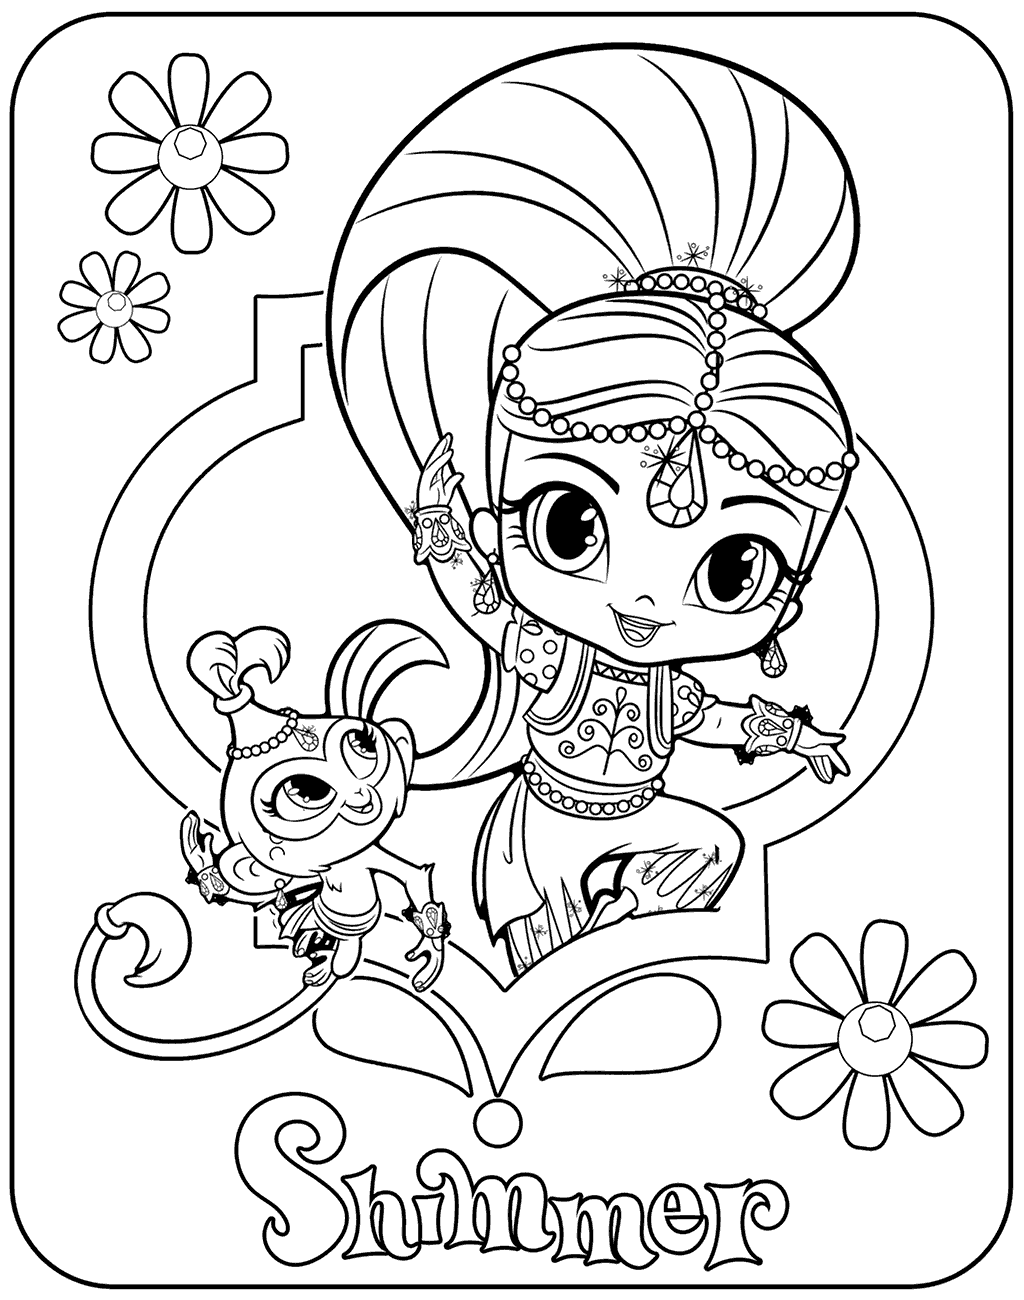 coloring shimmer and shine shimmer and shine coloring pages of 2017 and shine coloring shimmer